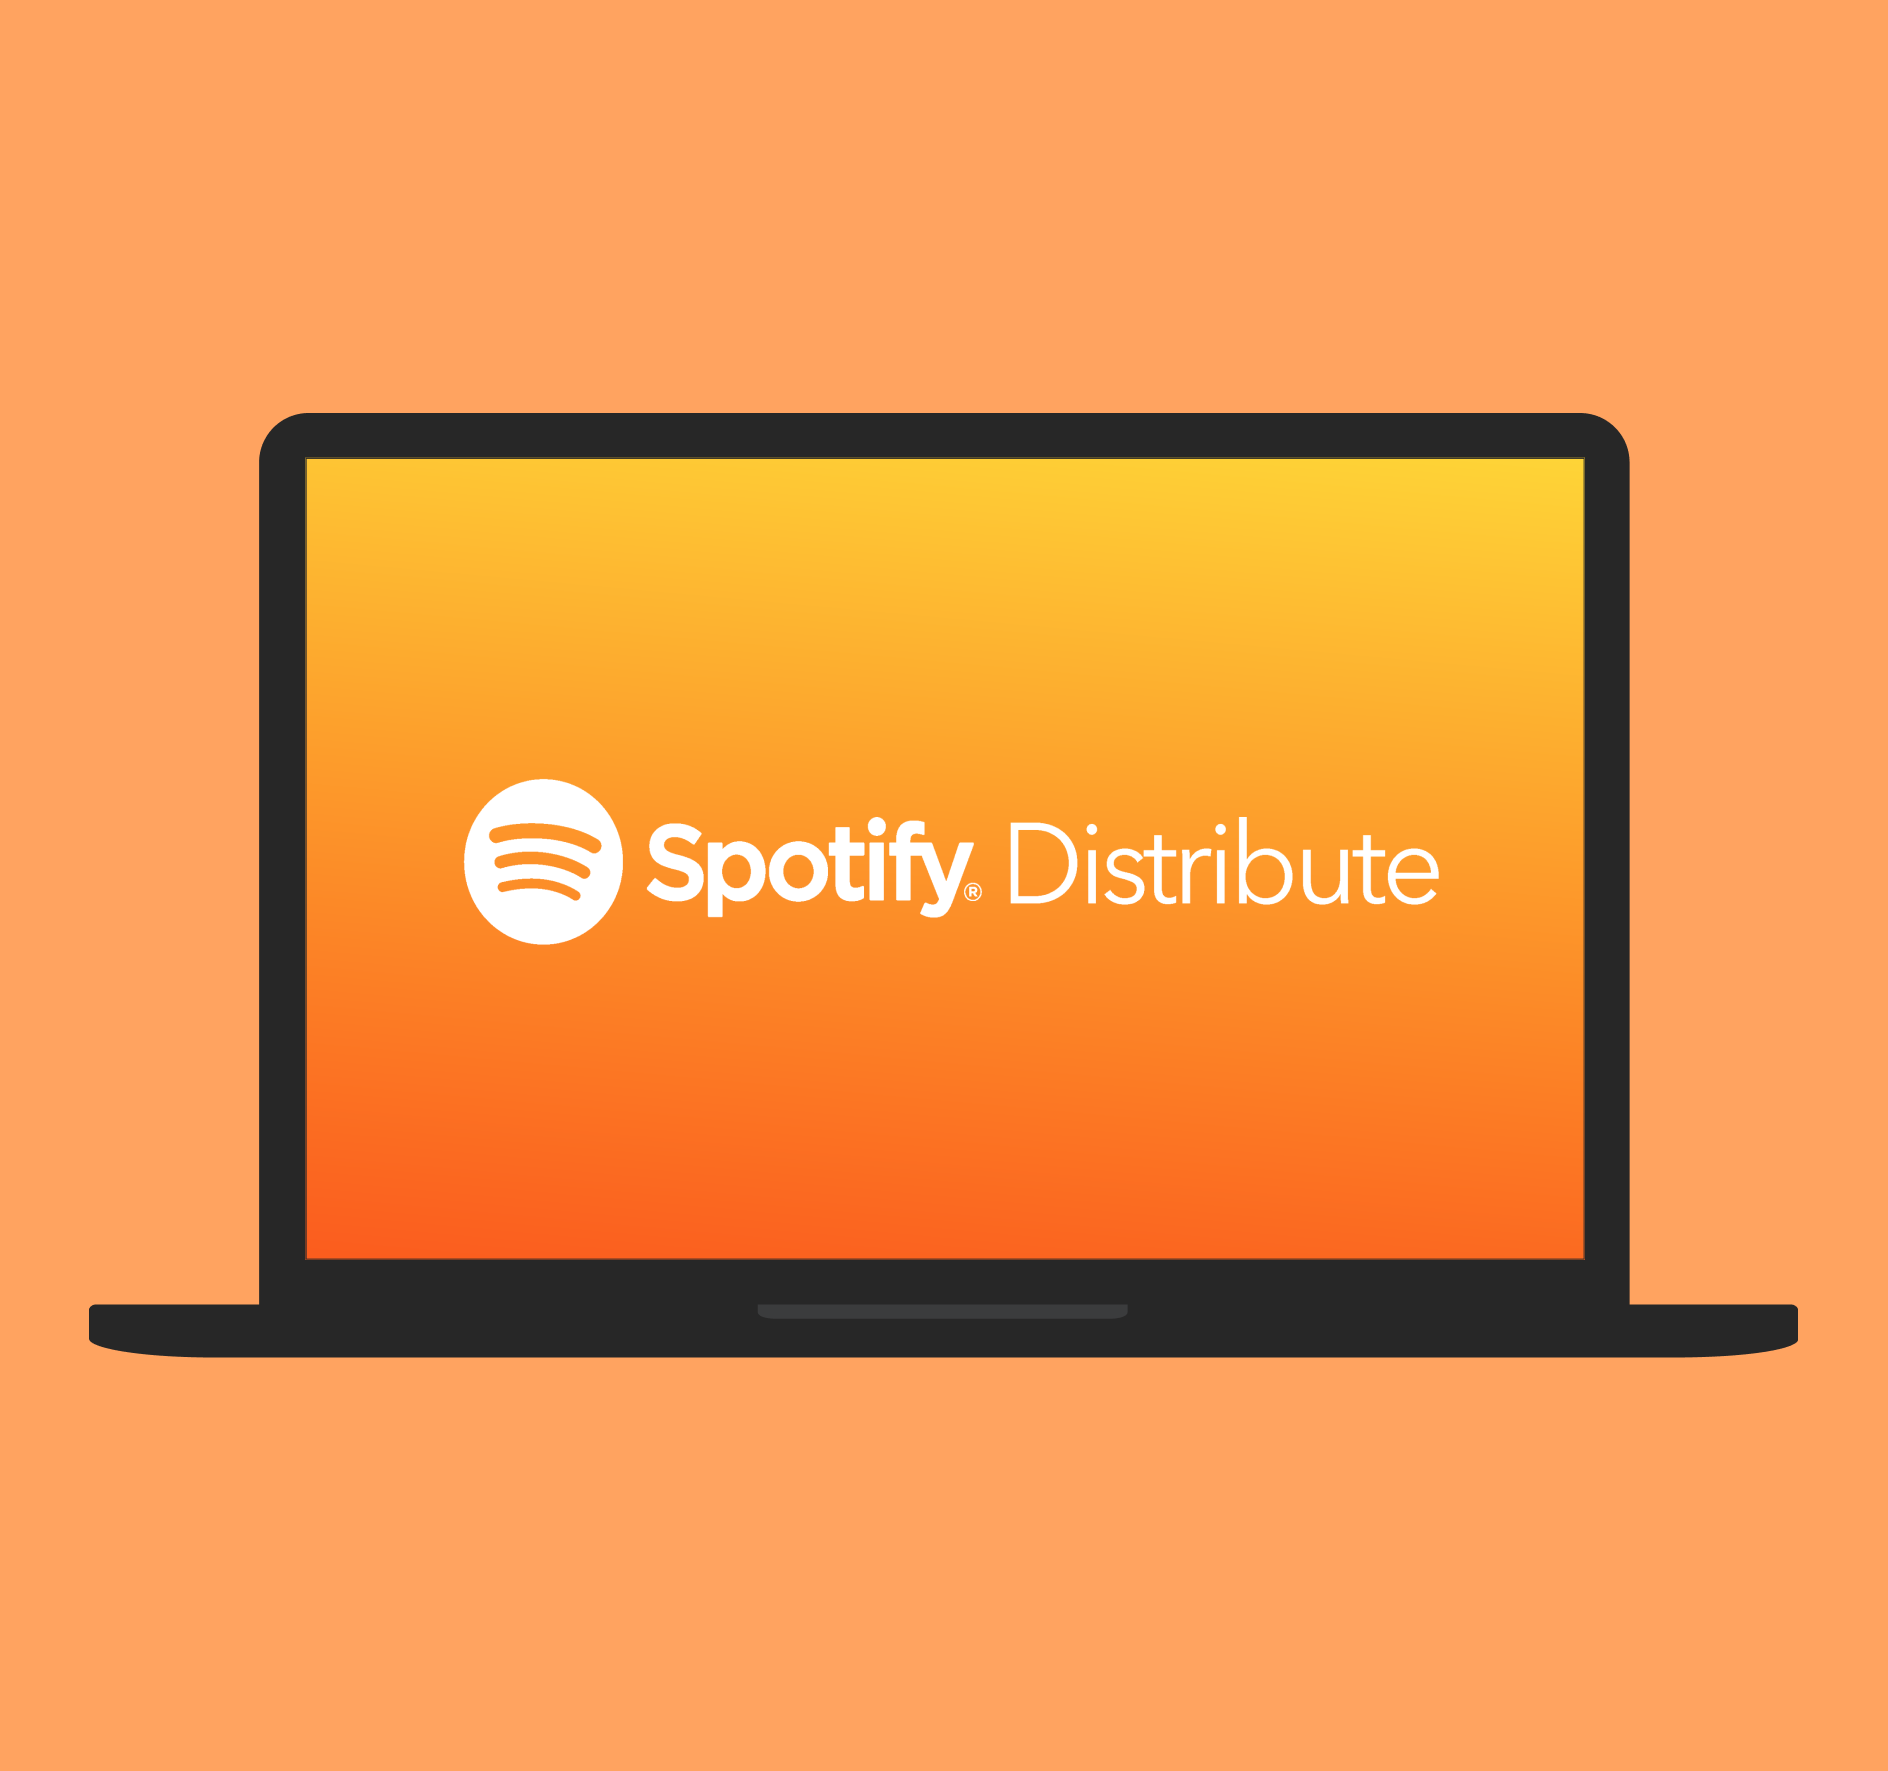 Spotify Distribute